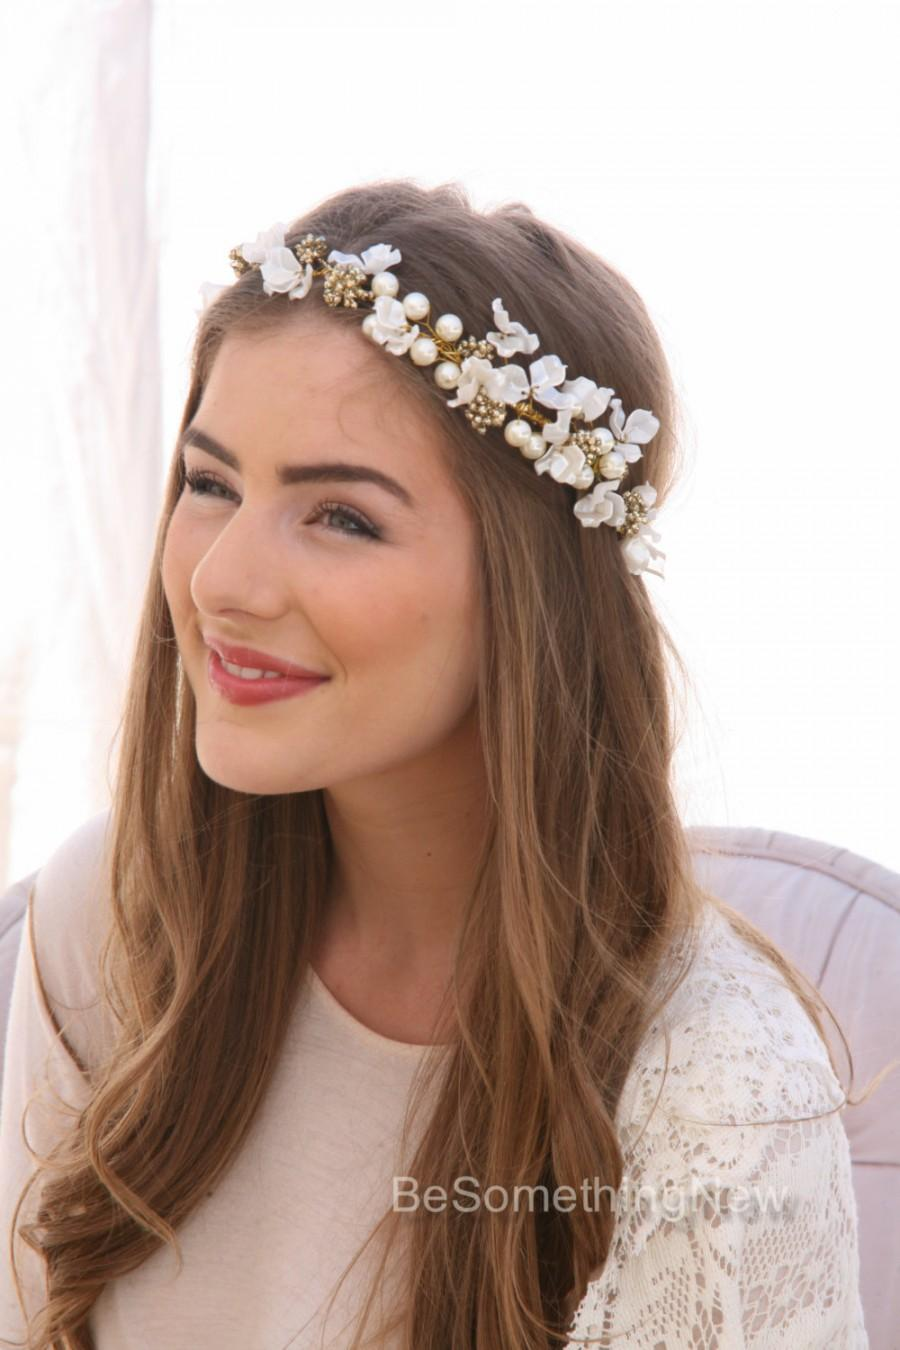 Ivory flower crown of delicate flowers and gold accents boho ivory flower crown of delicate flowers and gold accents boho wedding headpiece garden wedding hair wreath floral bridal hair wreath dhlflorist Images